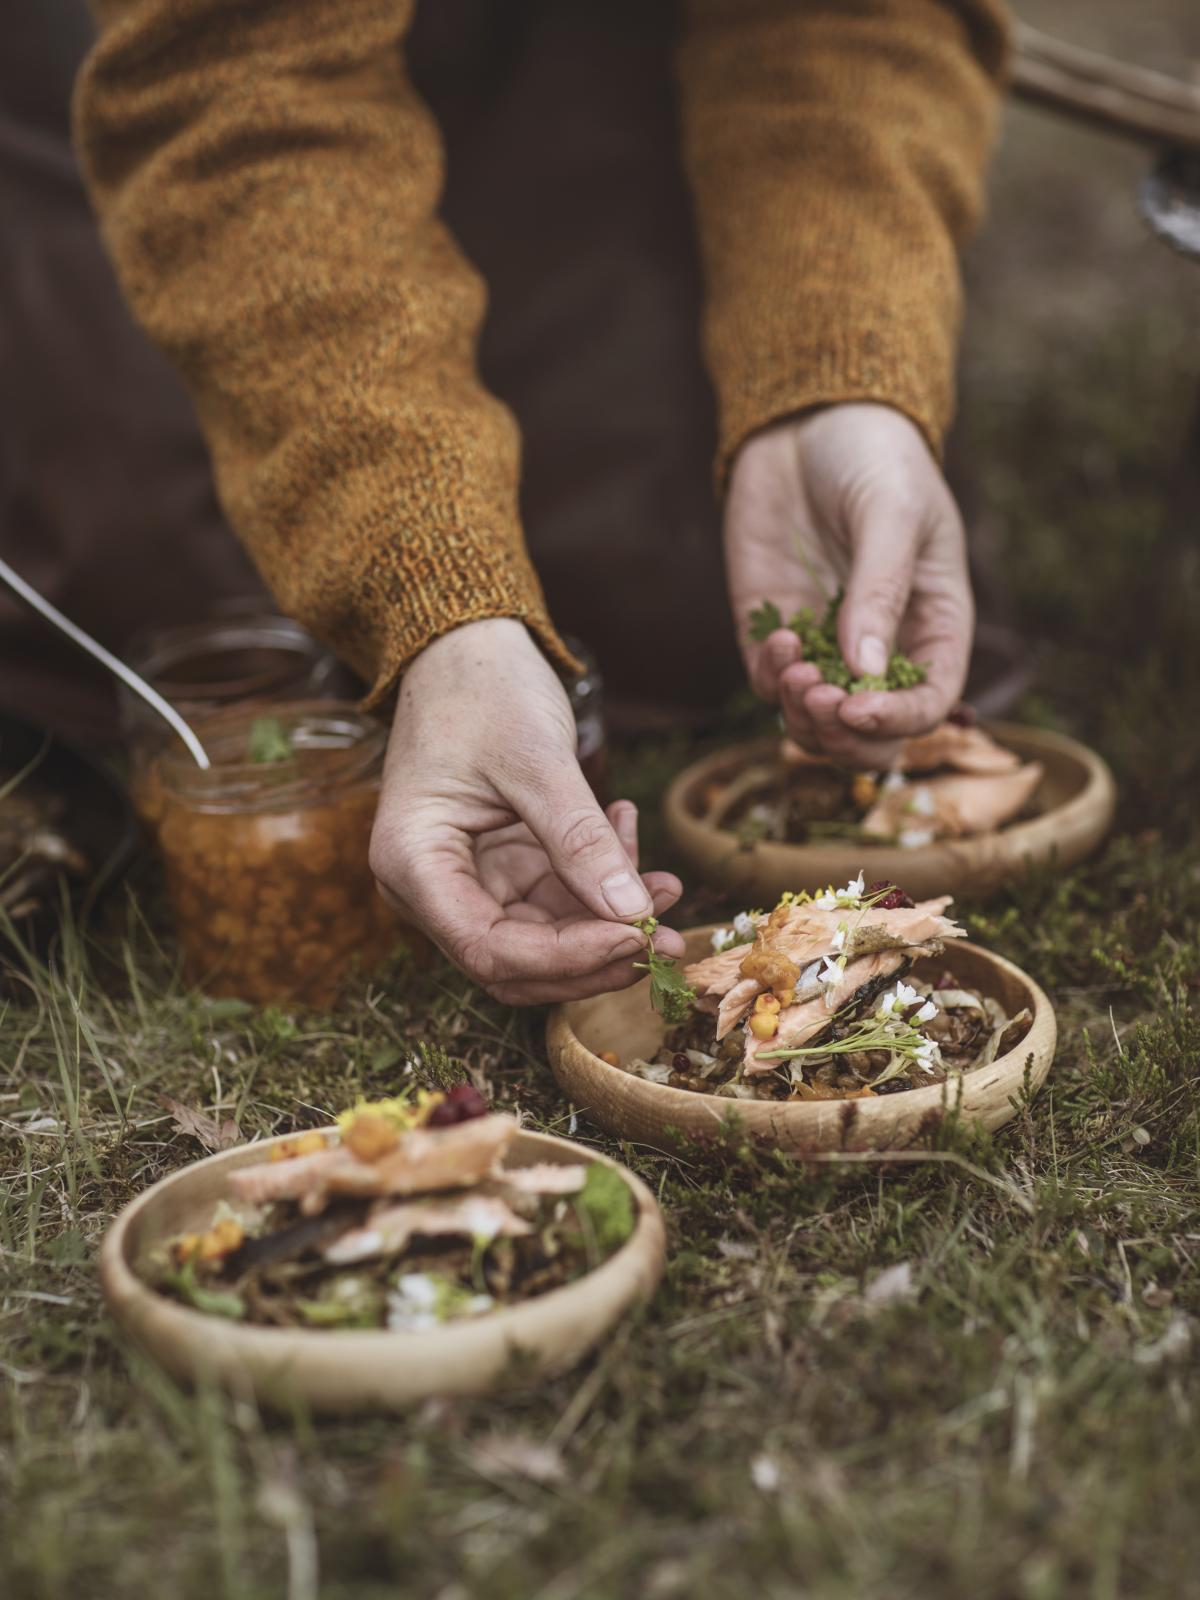 Outdoorsiness and foraging are a major part of Swedish culture.